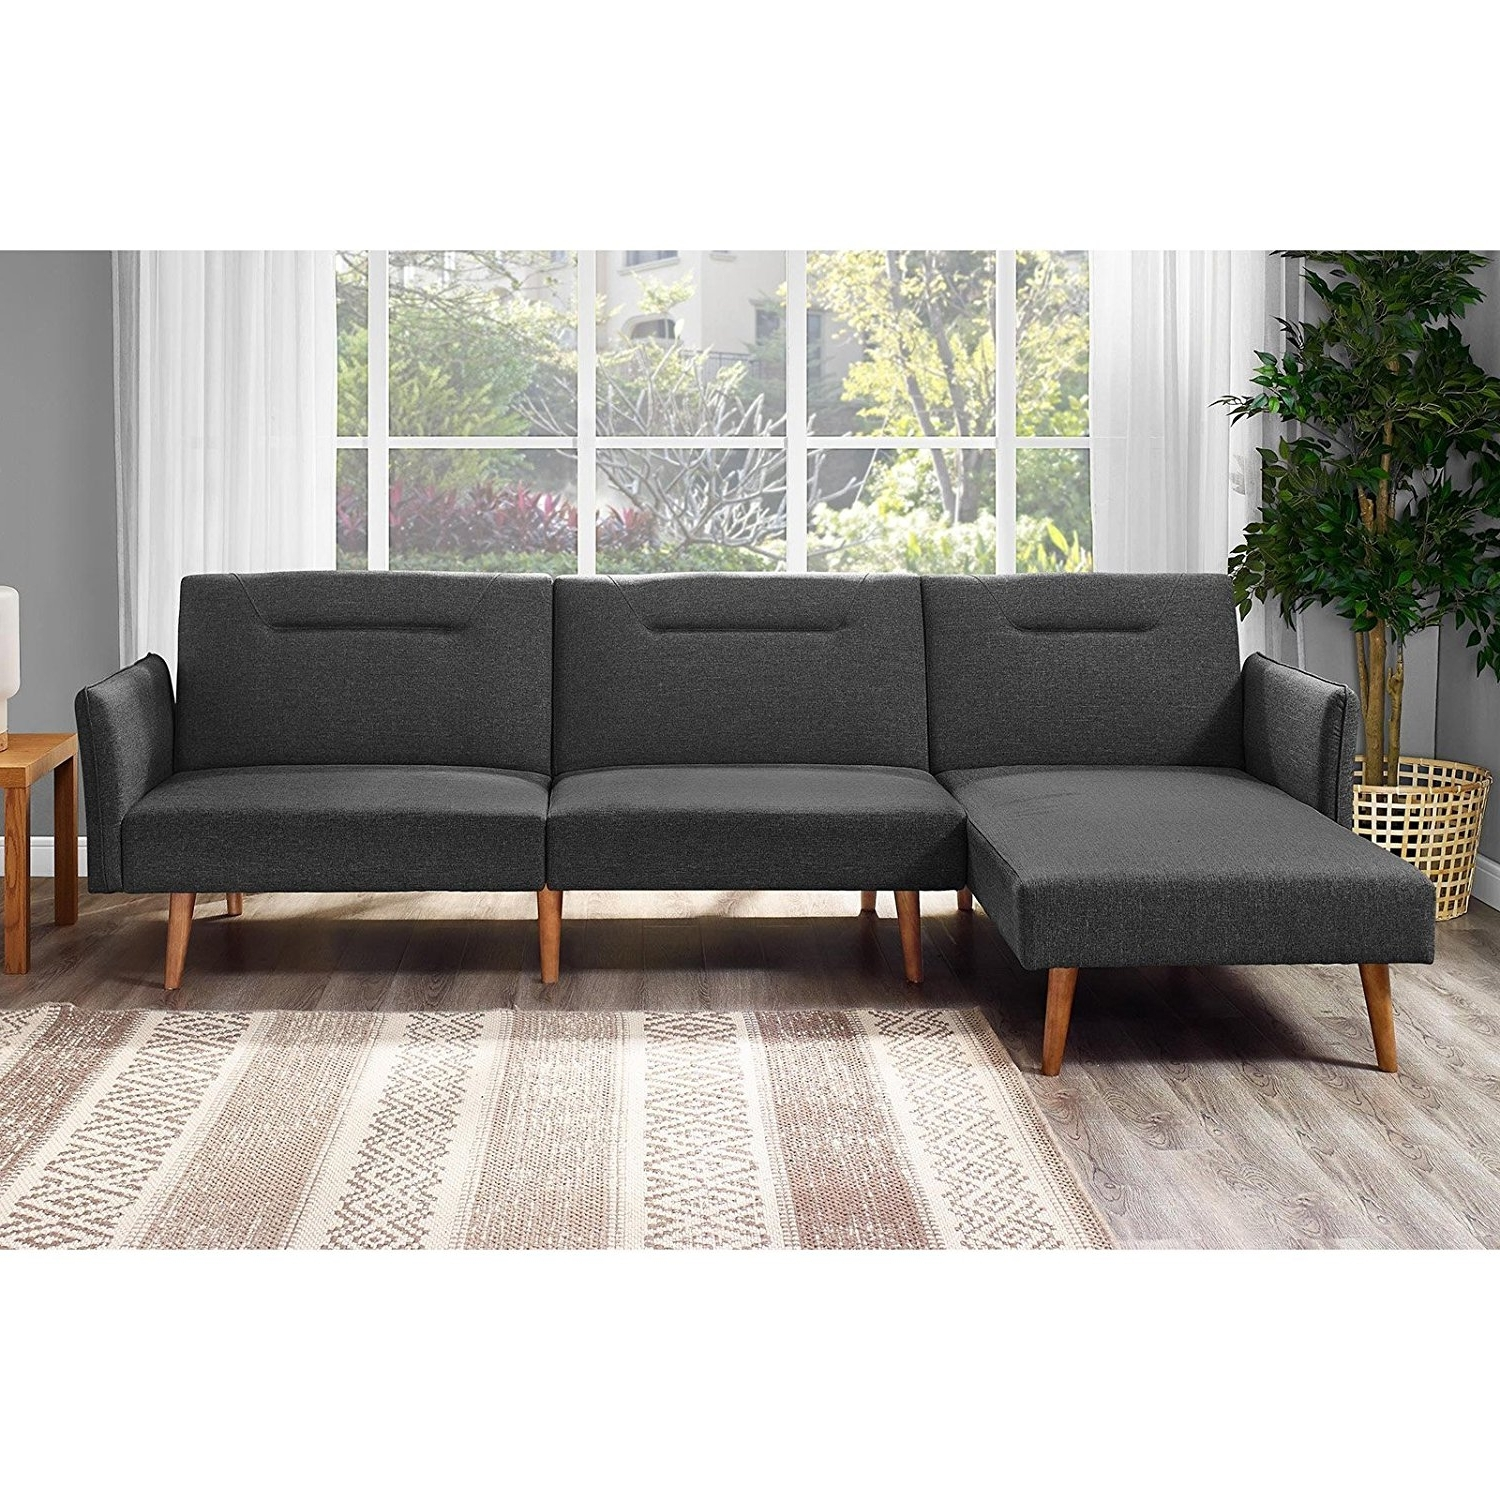 Most Current Amazon: Dhp Brent Futon Chaise: Kitchen & Dining Inside Futons With Chaise (View 9 of 15)